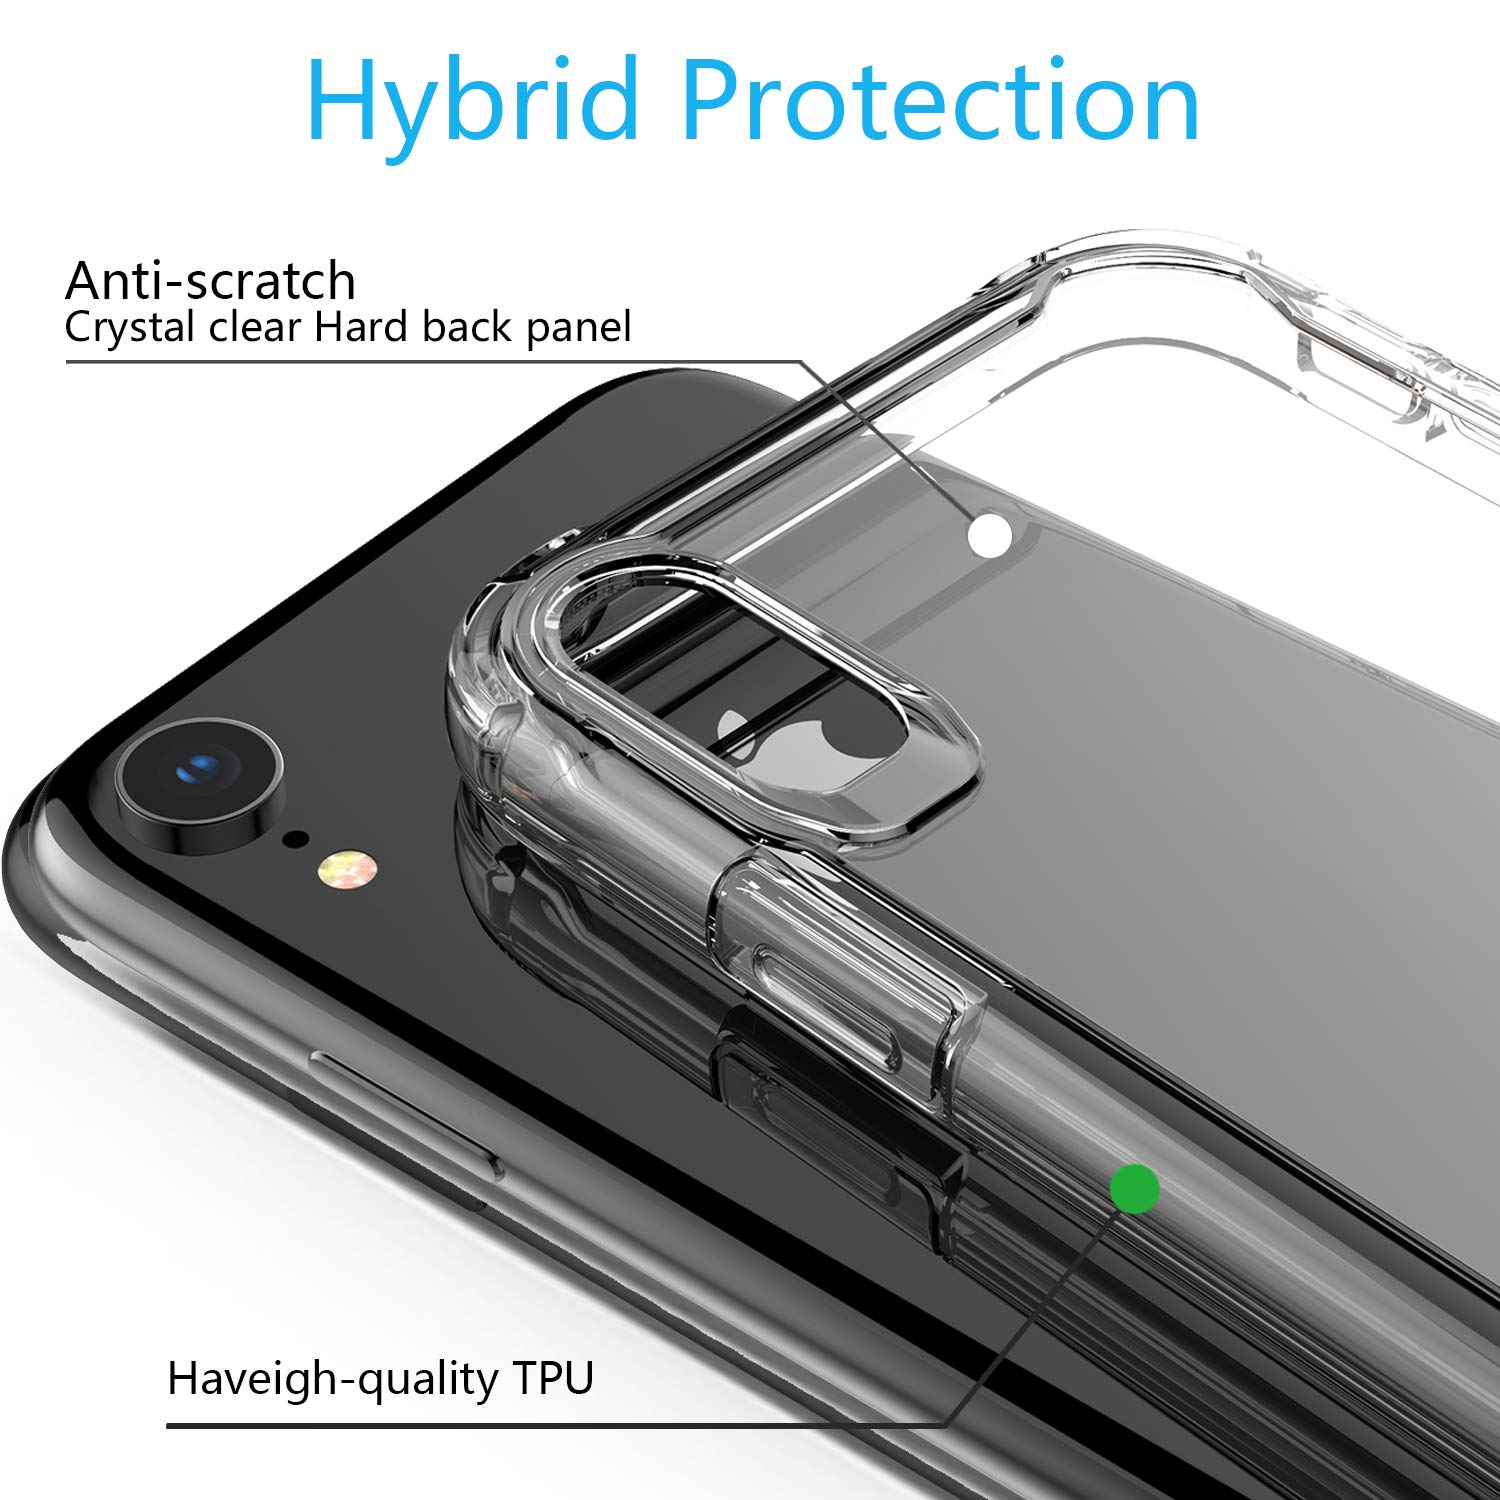 EFFENX iPhone XR Case - Clear Cover iPhone XR Shockproof Bumper with Air Cushion Protective case Soft and Slim (Clear Color) by EFFENX (Image #3)